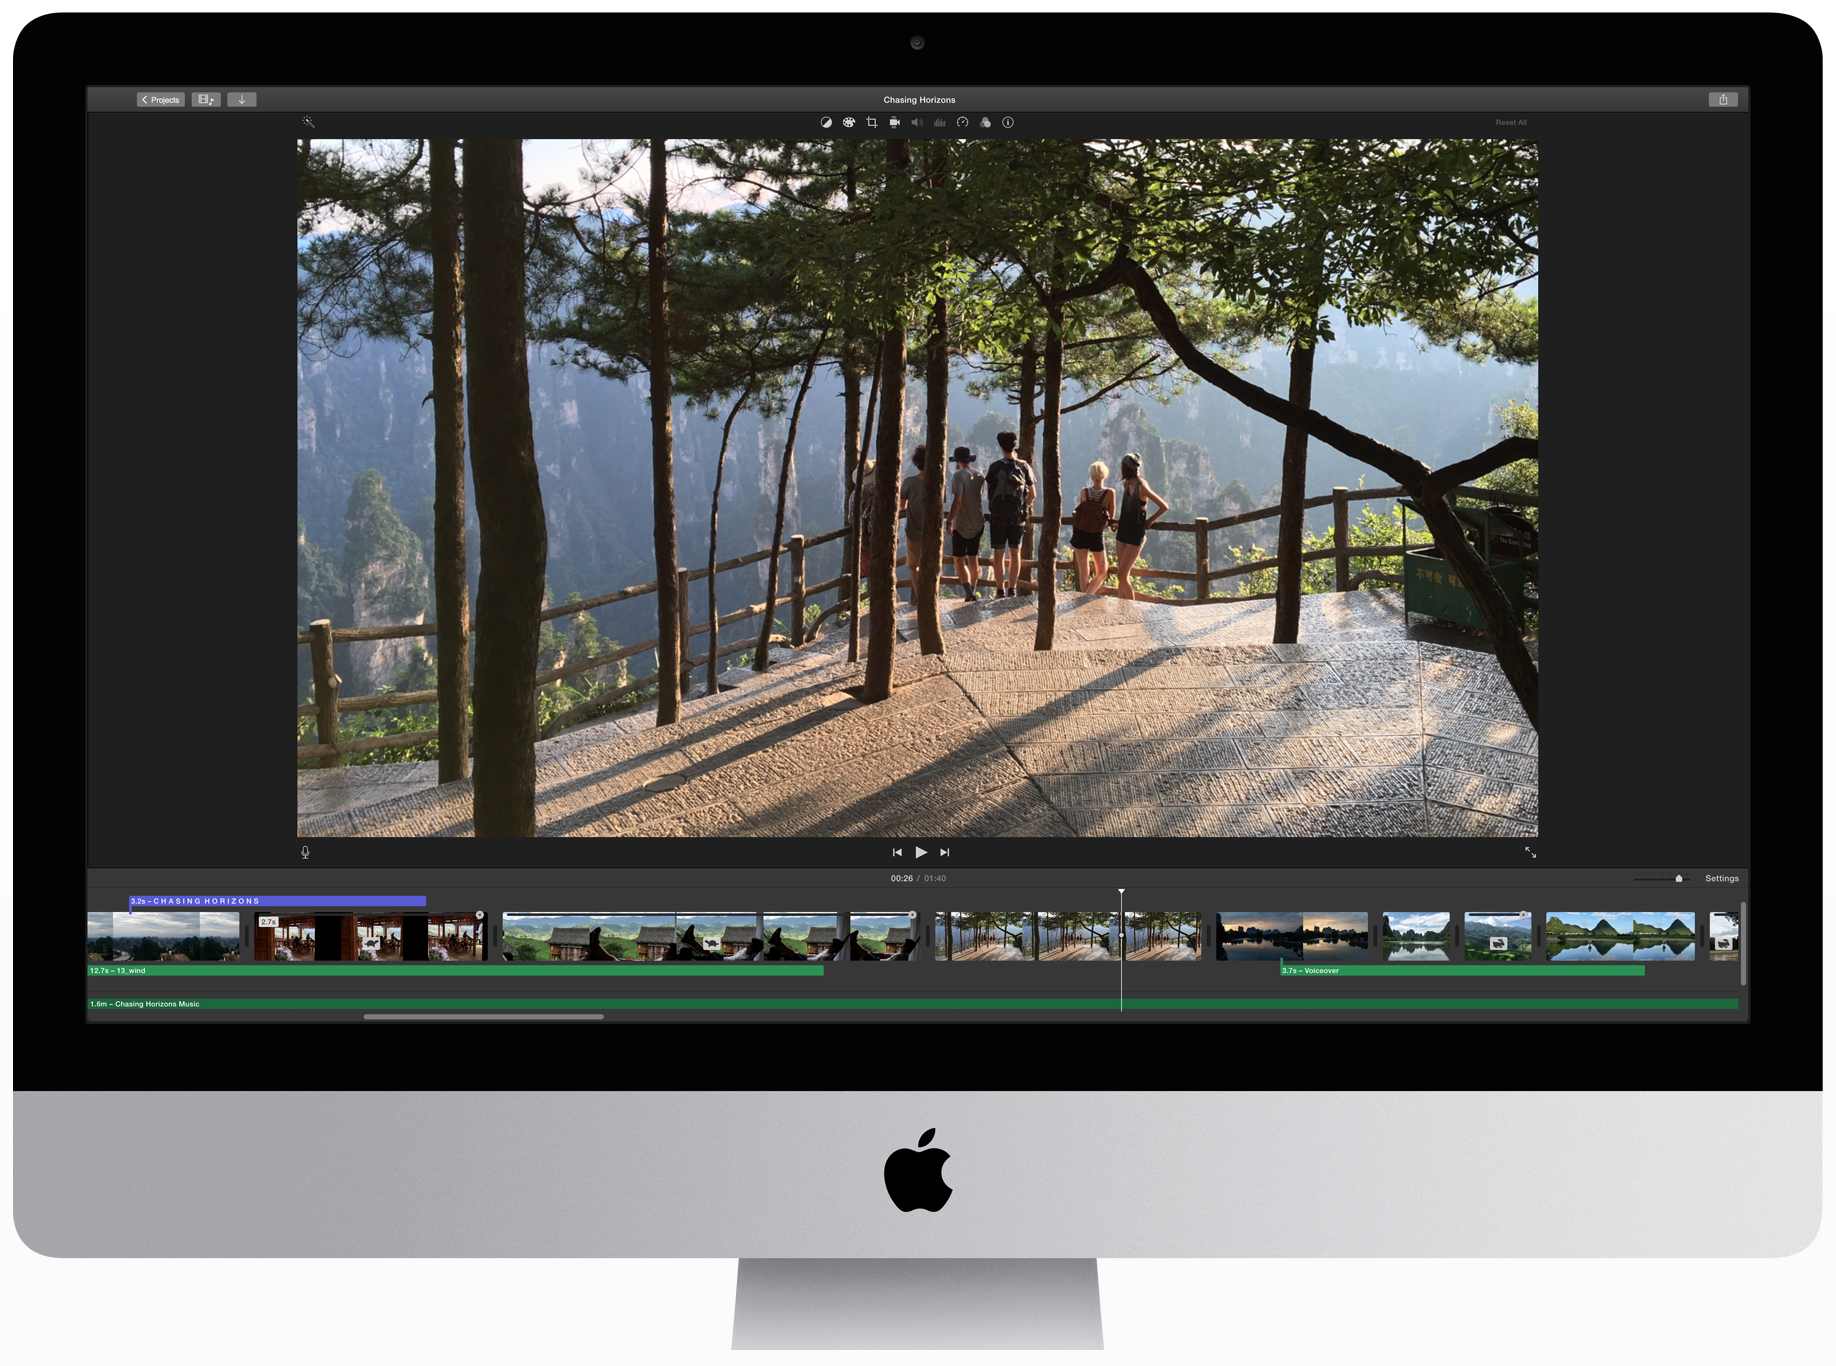 iMovie gains support for importing HEVC videos on macOC High Sierra